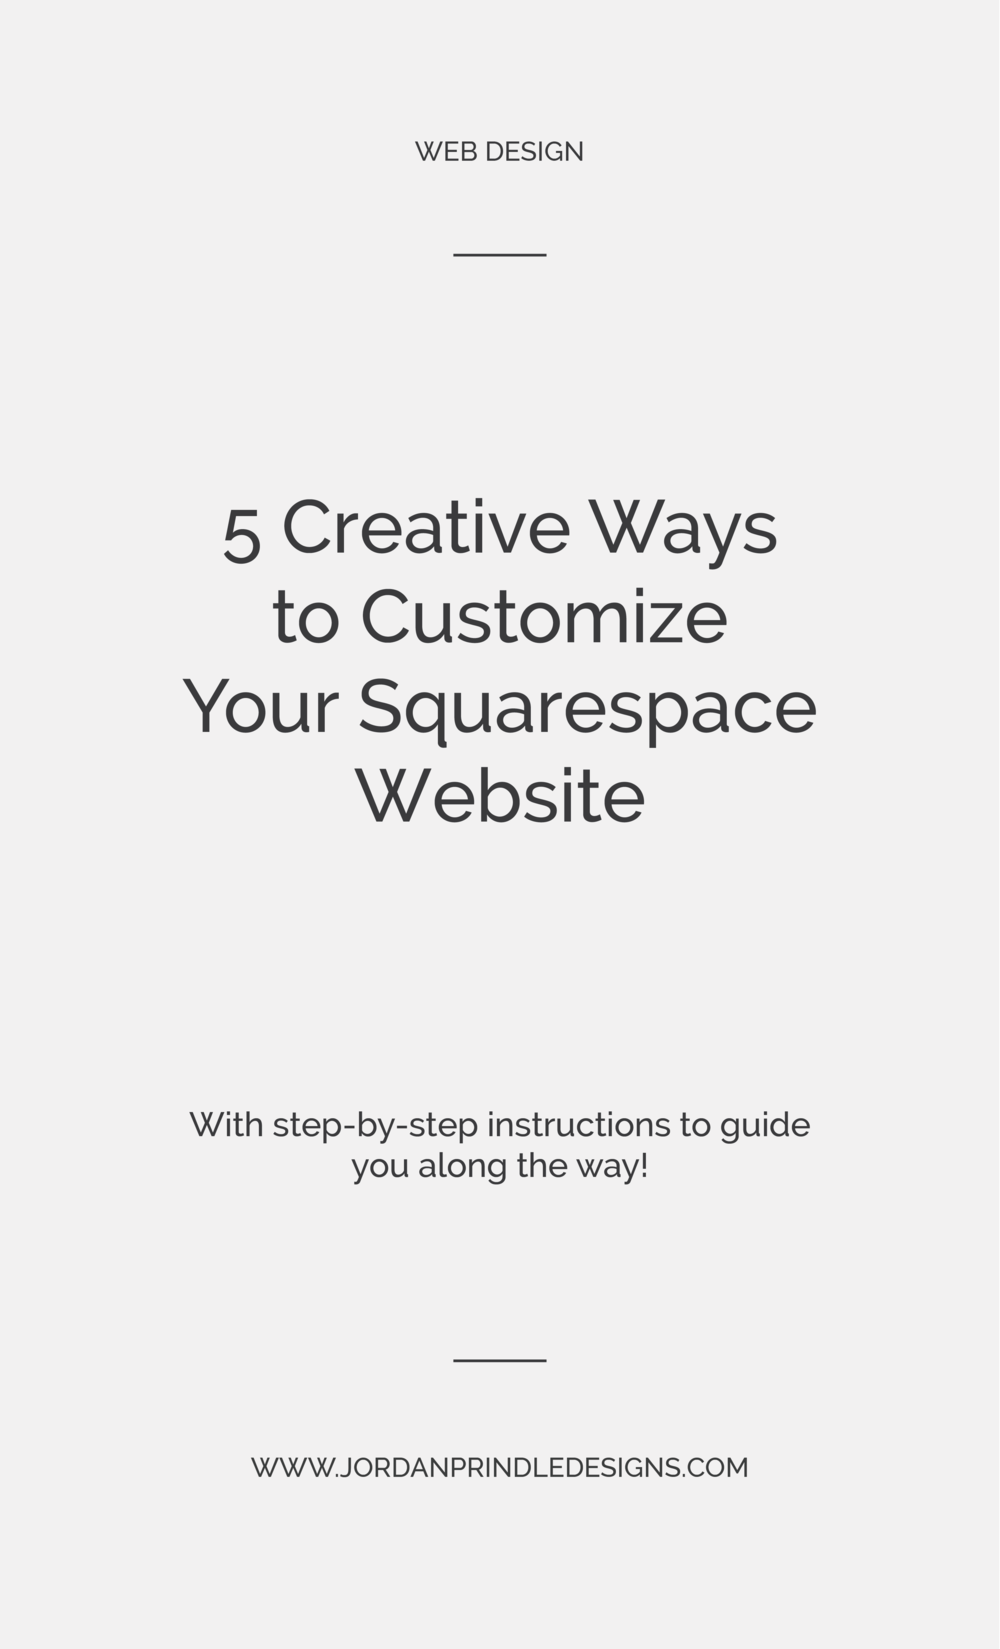 5 Creative Ways to Customize Your Squarespace Website | Designing a one-of-a-kind #squarespace site can be hard. But, with a few #custom design tricks you can be sure your #webdesign pops. Read all five creative solutions at www.jordanprindledesigns.com #branding #graphicdesigntips #squarespacedesign